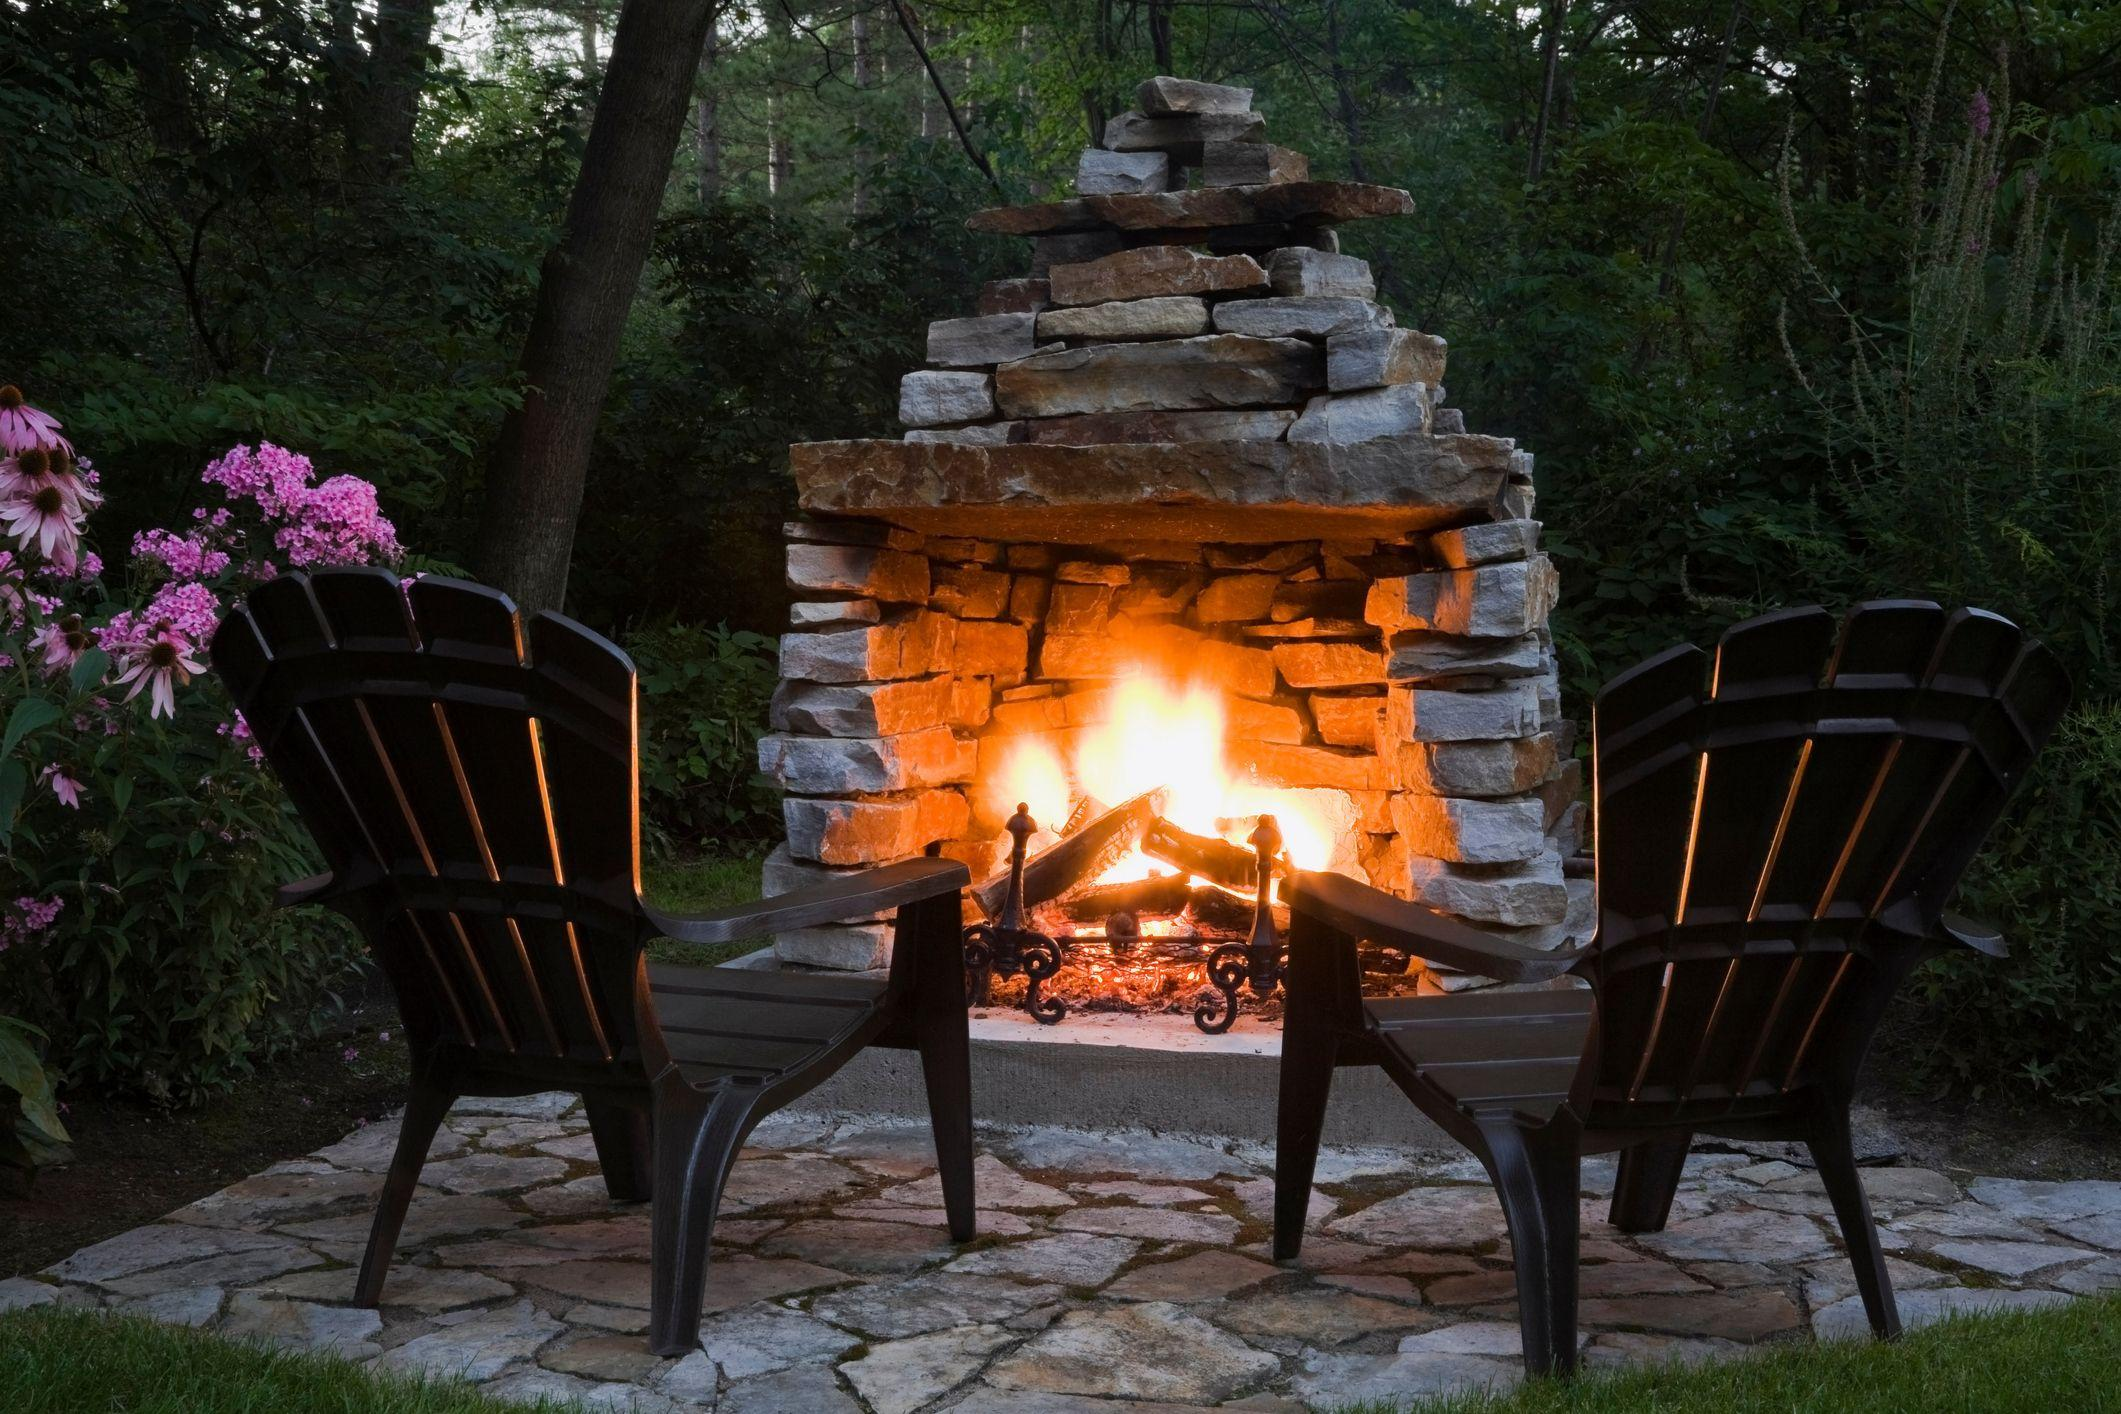 "<p>There's just something so cozy about a fire this time of year—the crackle, the smell, roasting hot dogs, and toasting marshmallows for the <a href=""https://www.countryliving.com/food-drinks/a28189946/smores-recipe/"" rel=""nofollow noopener"" target=""_blank"" data-ylk=""slk:best s'mores recipes"" class=""link rapid-noclick-resp"">best s'mores recipes</a>. Even though campfires get most of the glory, homeowners are embracing the romantic appeal of enjoying a fire in their very own backyards. More and more, when deciding on the <a href=""https://www.countryliving.com/gardening/garden-ideas/g2314/backyard-ideas/"" rel=""nofollow noopener"" target=""_blank"" data-ylk=""slk:best ideas for backyards"" class=""link rapid-noclick-resp"">best ideas for backyards</a>, an outdoor fireplace or a fire pit is becoming a focal point in the design. And it's no wonder—remember that part about s'mores?</p><p>Whether you have a large, sprawling back lawn space or are looking for <a href=""https://www.countryliving.com/gardening/news/g4183/small-backyard-ideas/"" rel=""nofollow noopener"" target=""_blank"" data-ylk=""slk:best ideas for small backyards"" class=""link rapid-noclick-resp"">best ideas for small backyards</a>, an outdoor fireplace or fire pit is something to consider. Custom built-in designs can be on the pricier side, but for smaller budgets, there are plenty of super affordable options for fire pits and chimineas (a great pick for small spaces!) that are just a click away on Amazon. If you're in the mood for a project, try your hand at one of these DIY outdoor fireplace tutorials.</p><p>Either way, you can be relaxing by the glow of an outdoor fire in no time, whether you buy a fire pit for your patio or build an outdoor fireplace from scratch. Now, who's bringing the hot dogs and marshmallows?</p>"